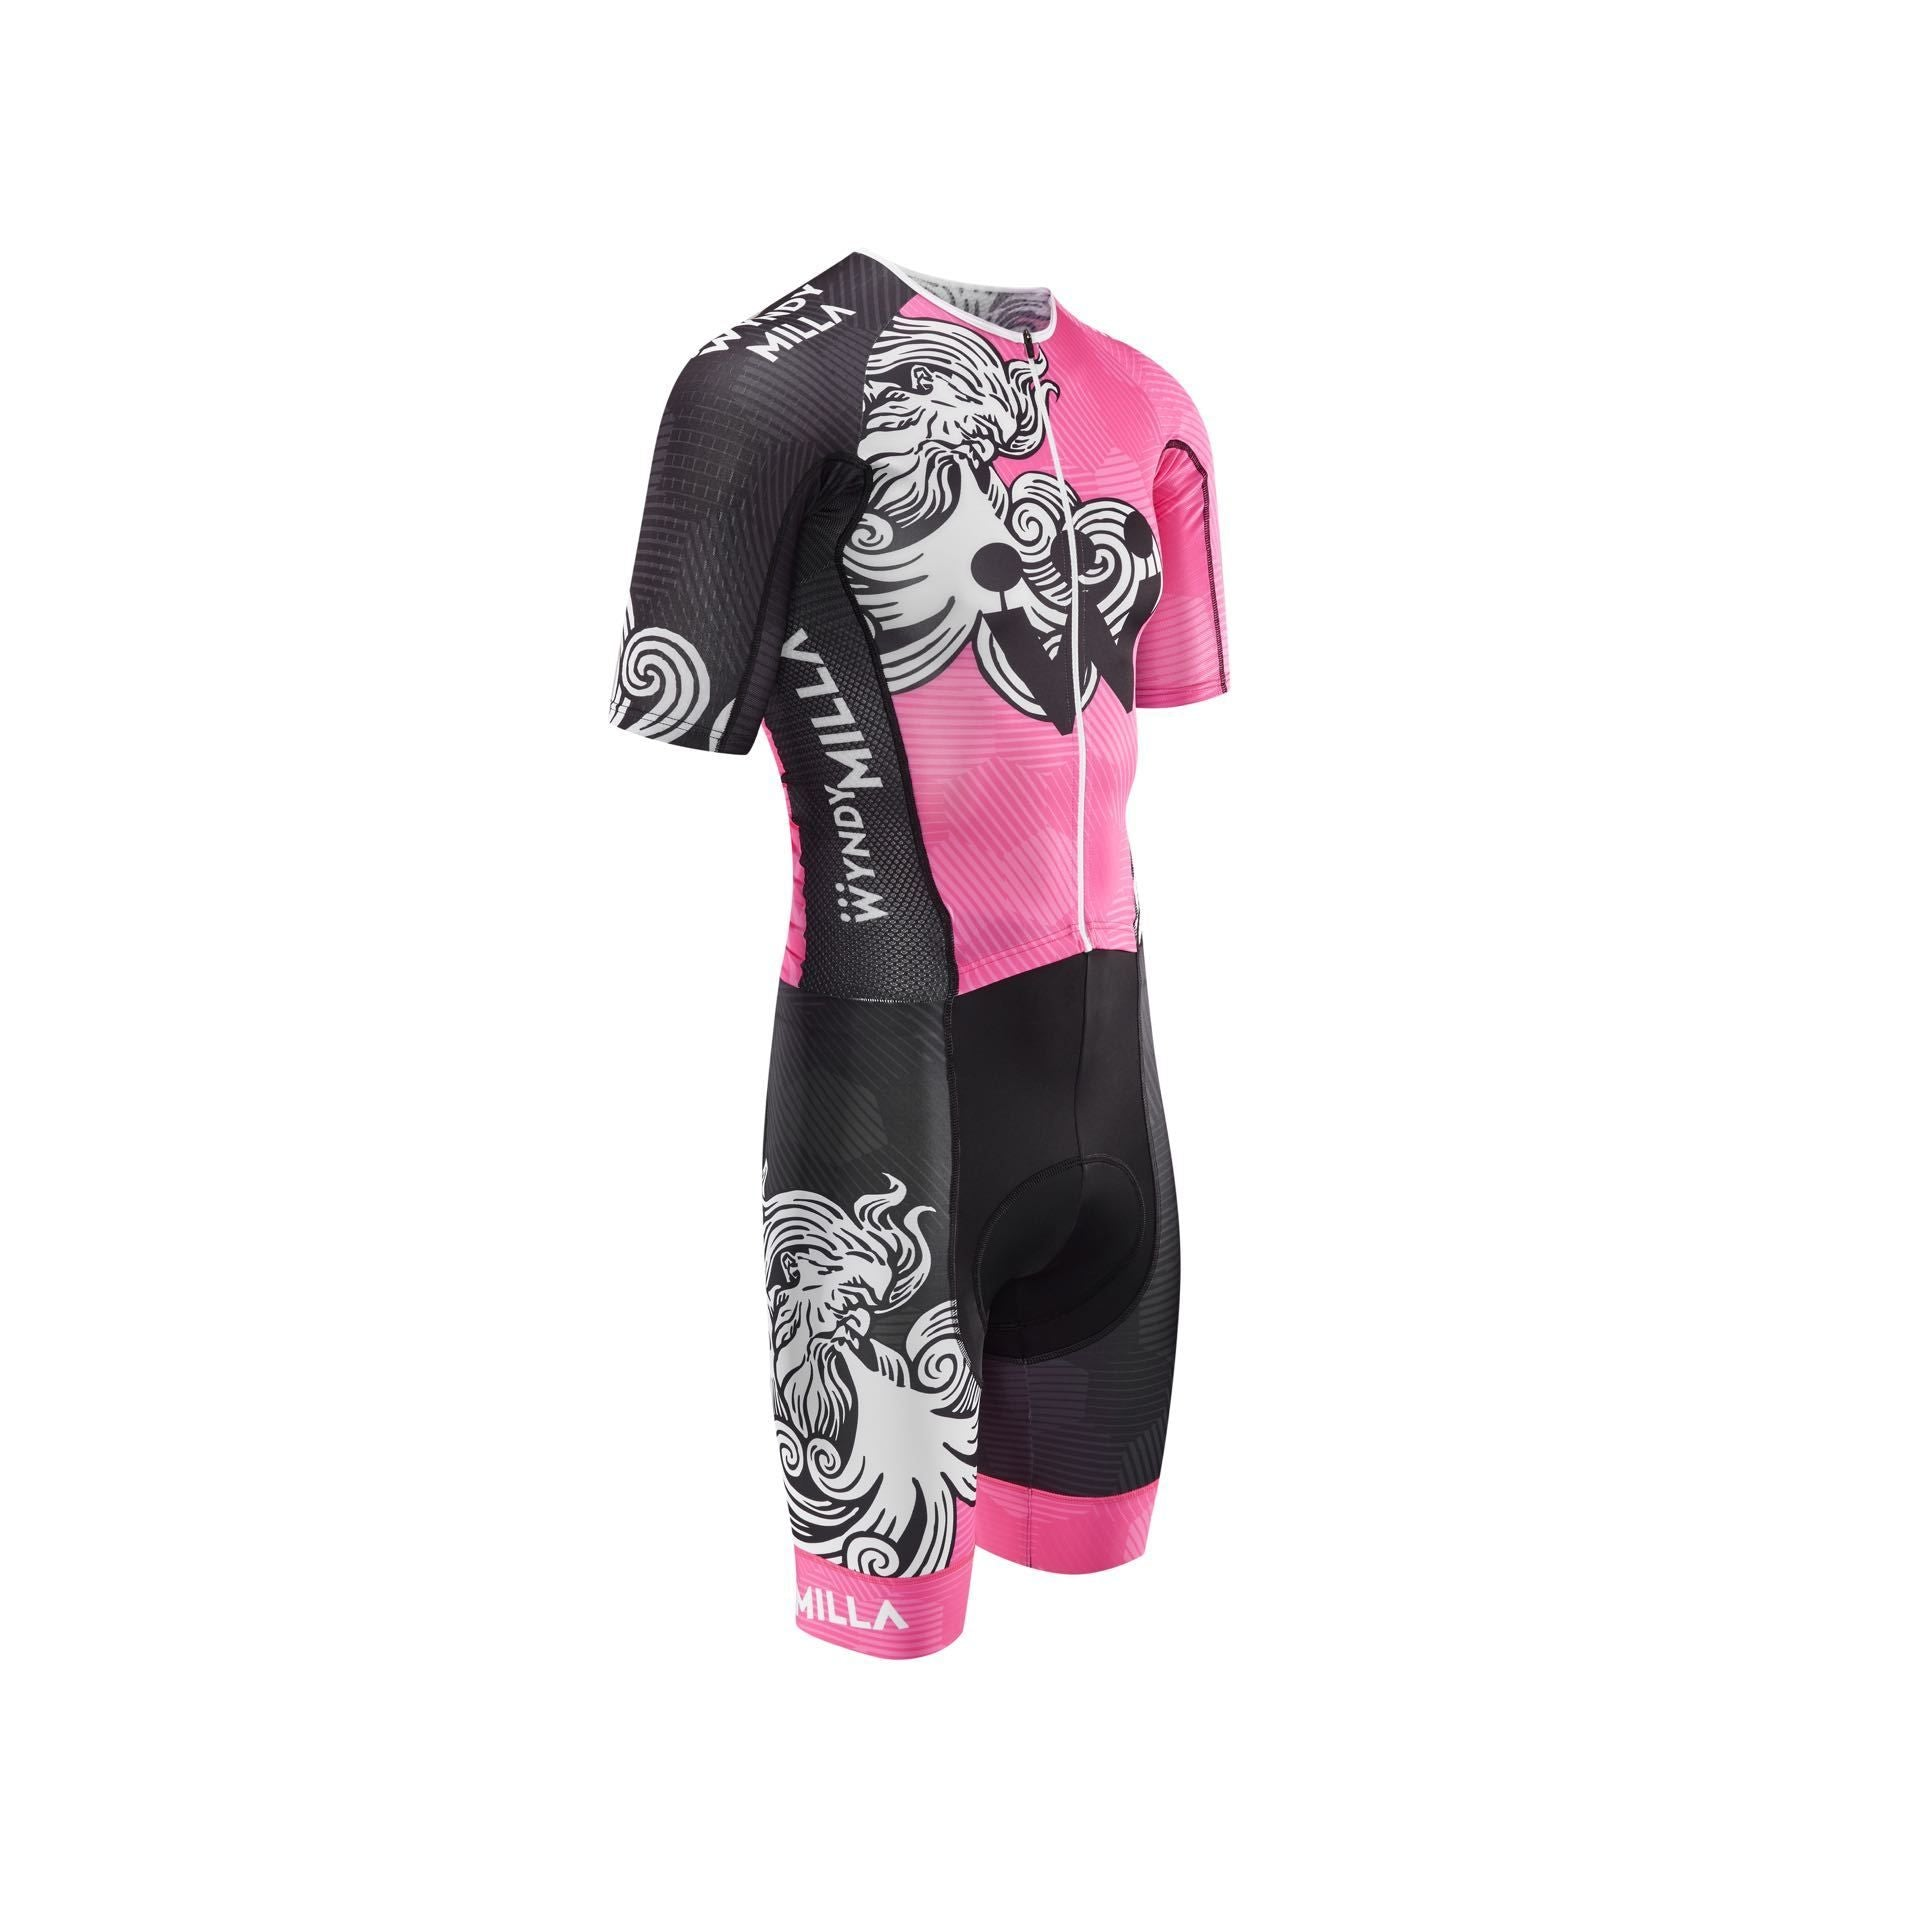 WyndyMilla Original Pink SpeedSuit Team Edition 2018/19